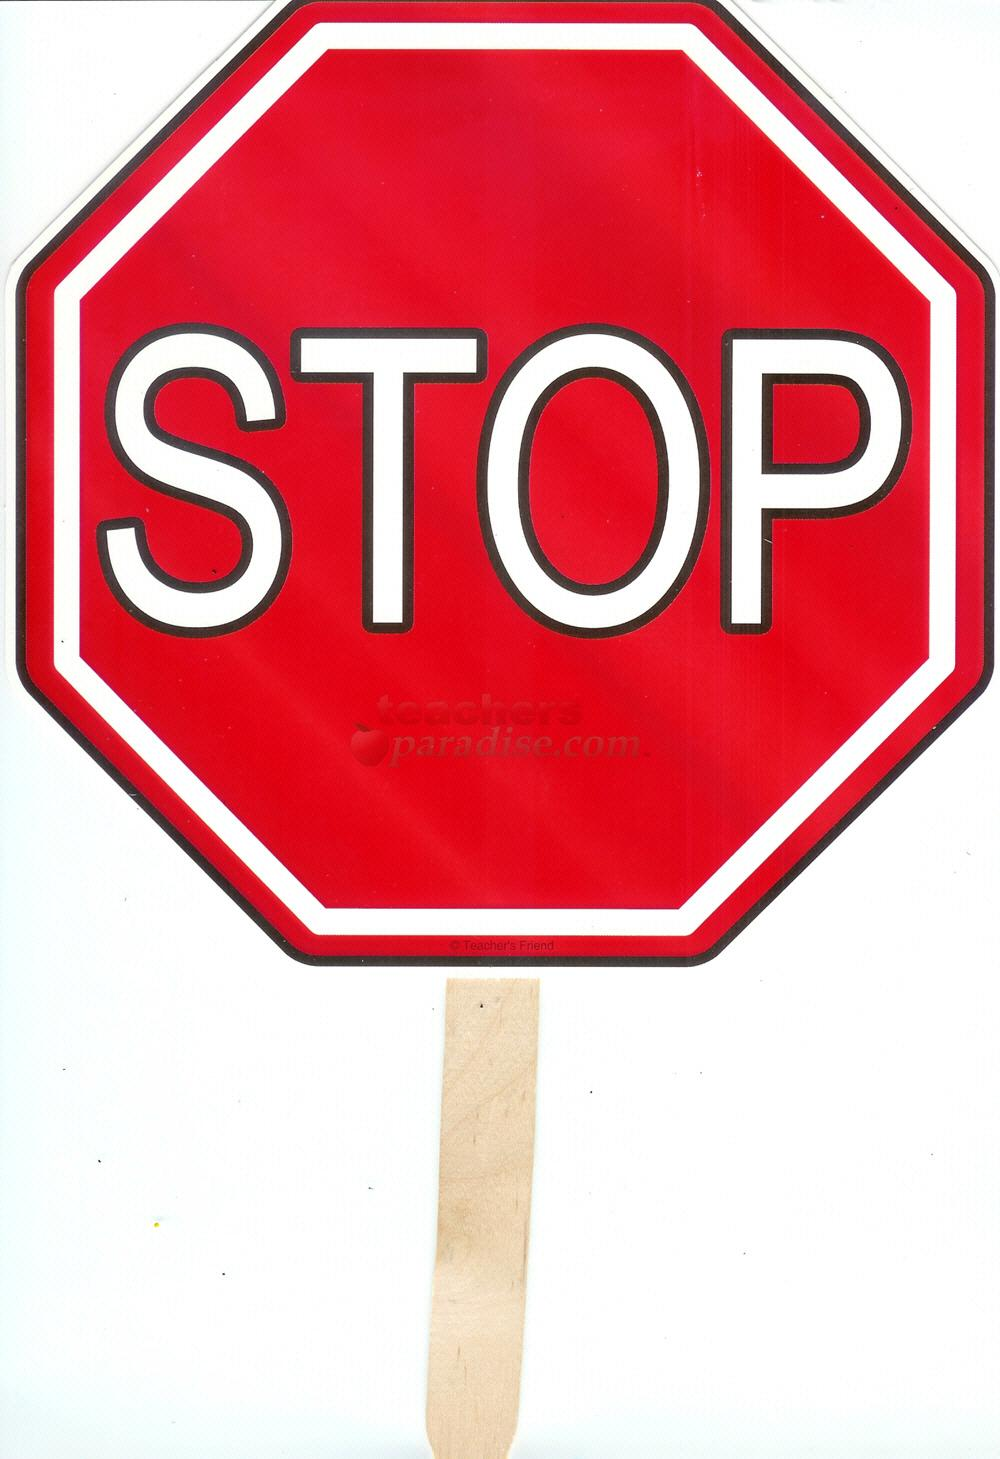 Black And White Stop Sign Clipart Stop S-Black And White Stop Sign Clipart Stop Sign Clipart 193 Jpg-3